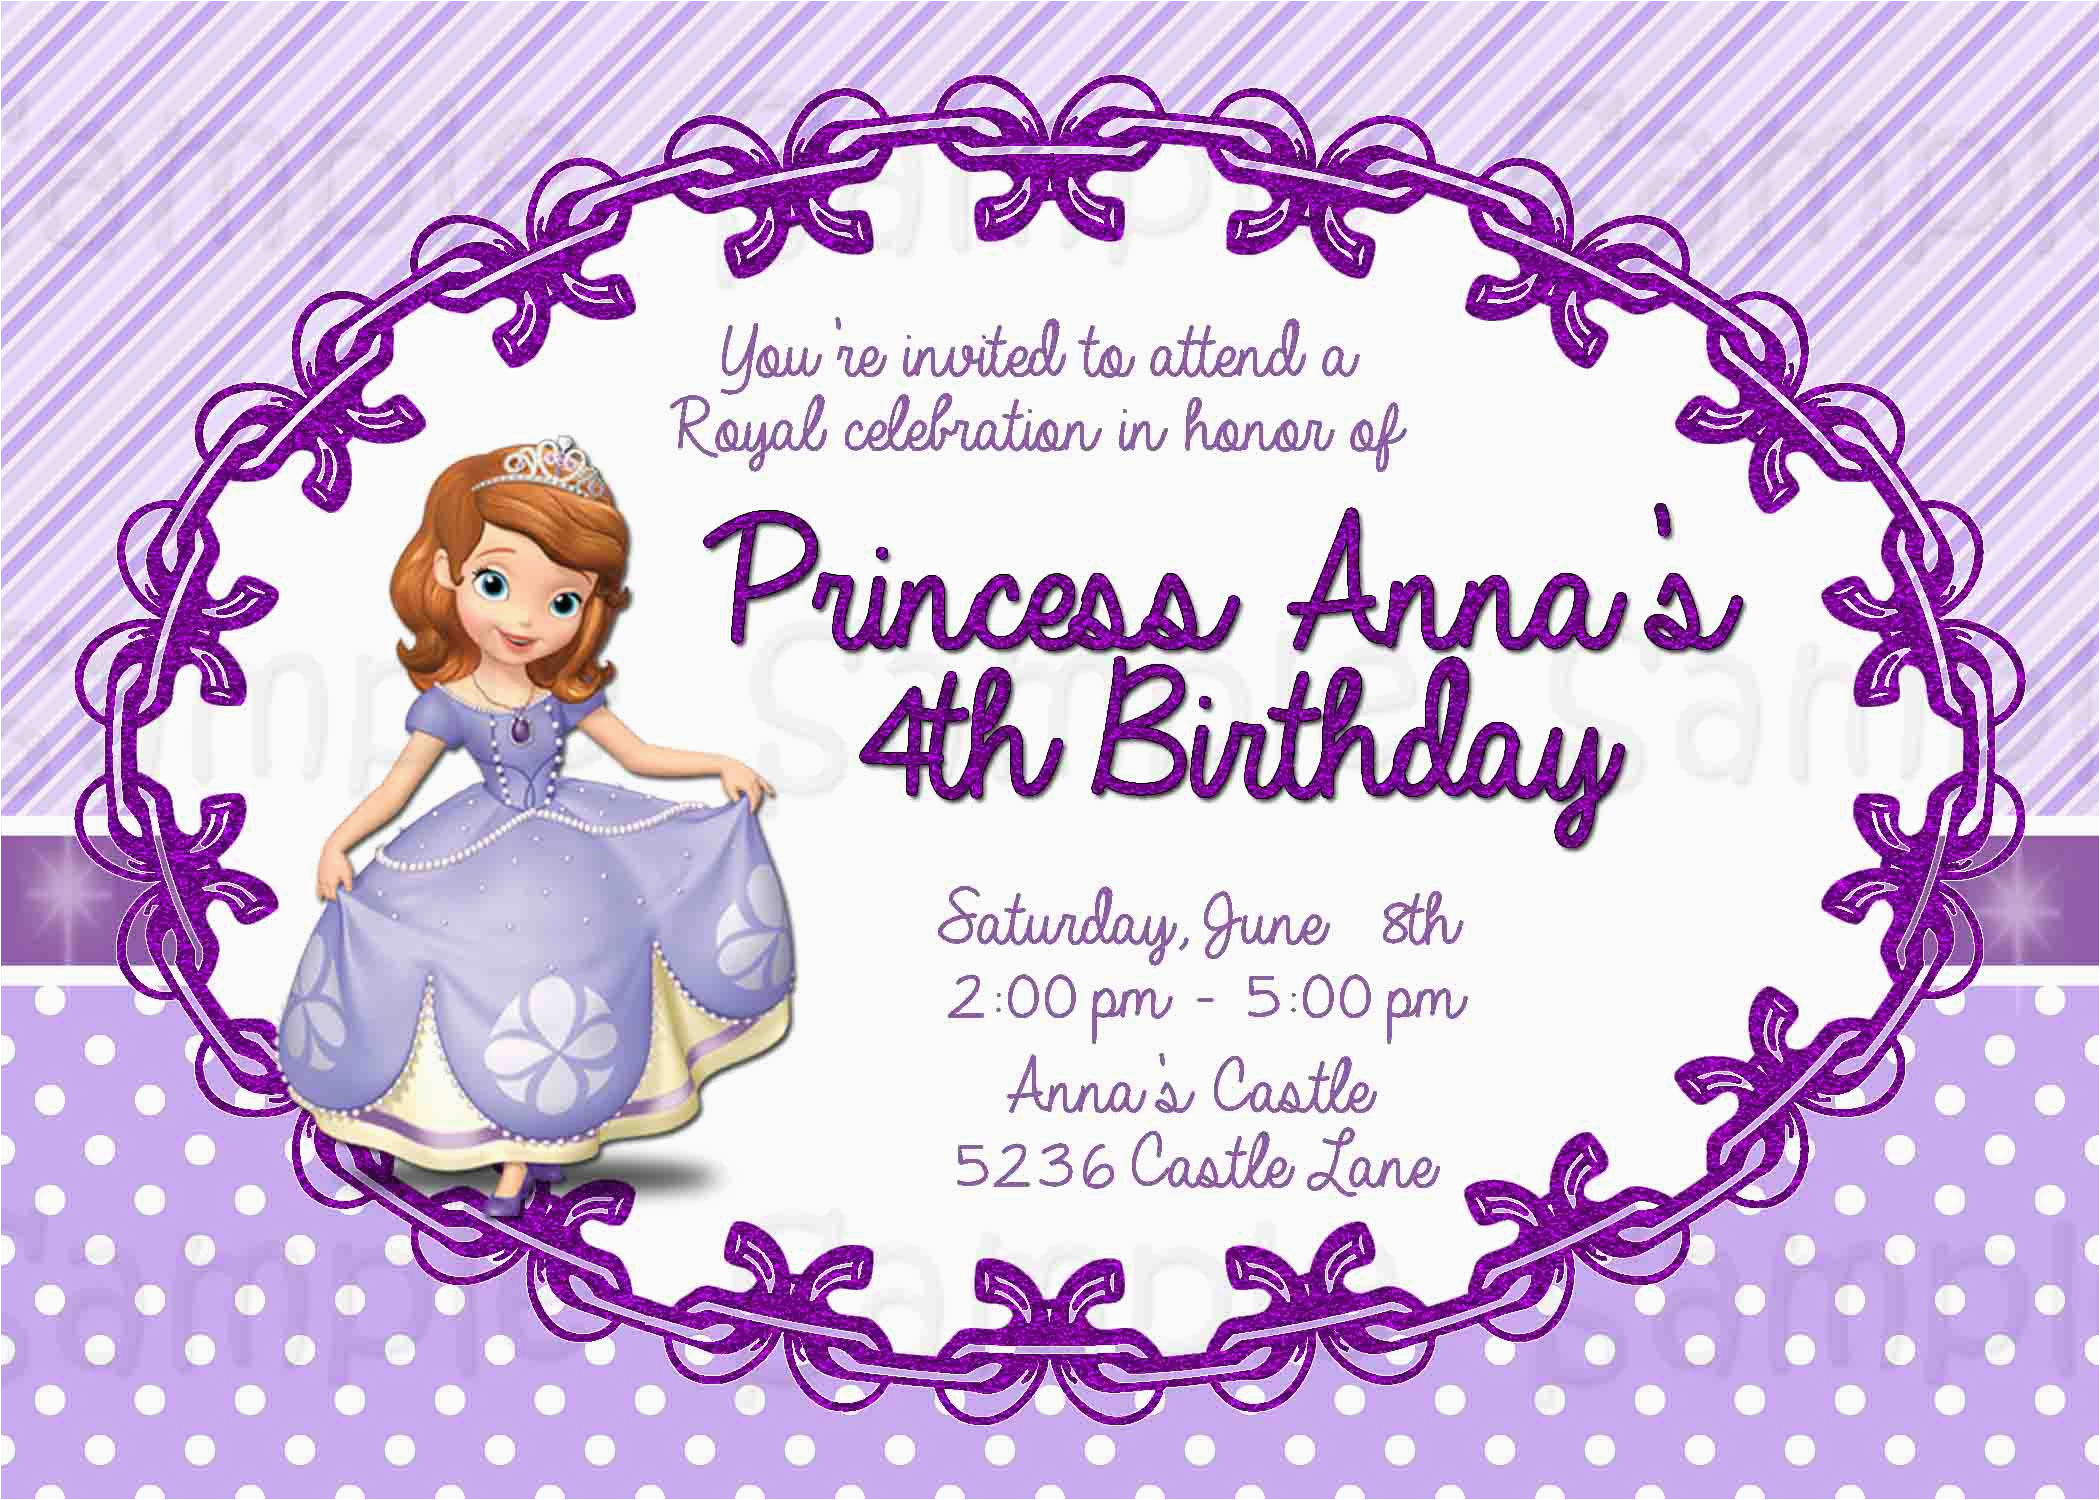 Customized Birthday Invitations Online Invitation Card Free Printable 1st